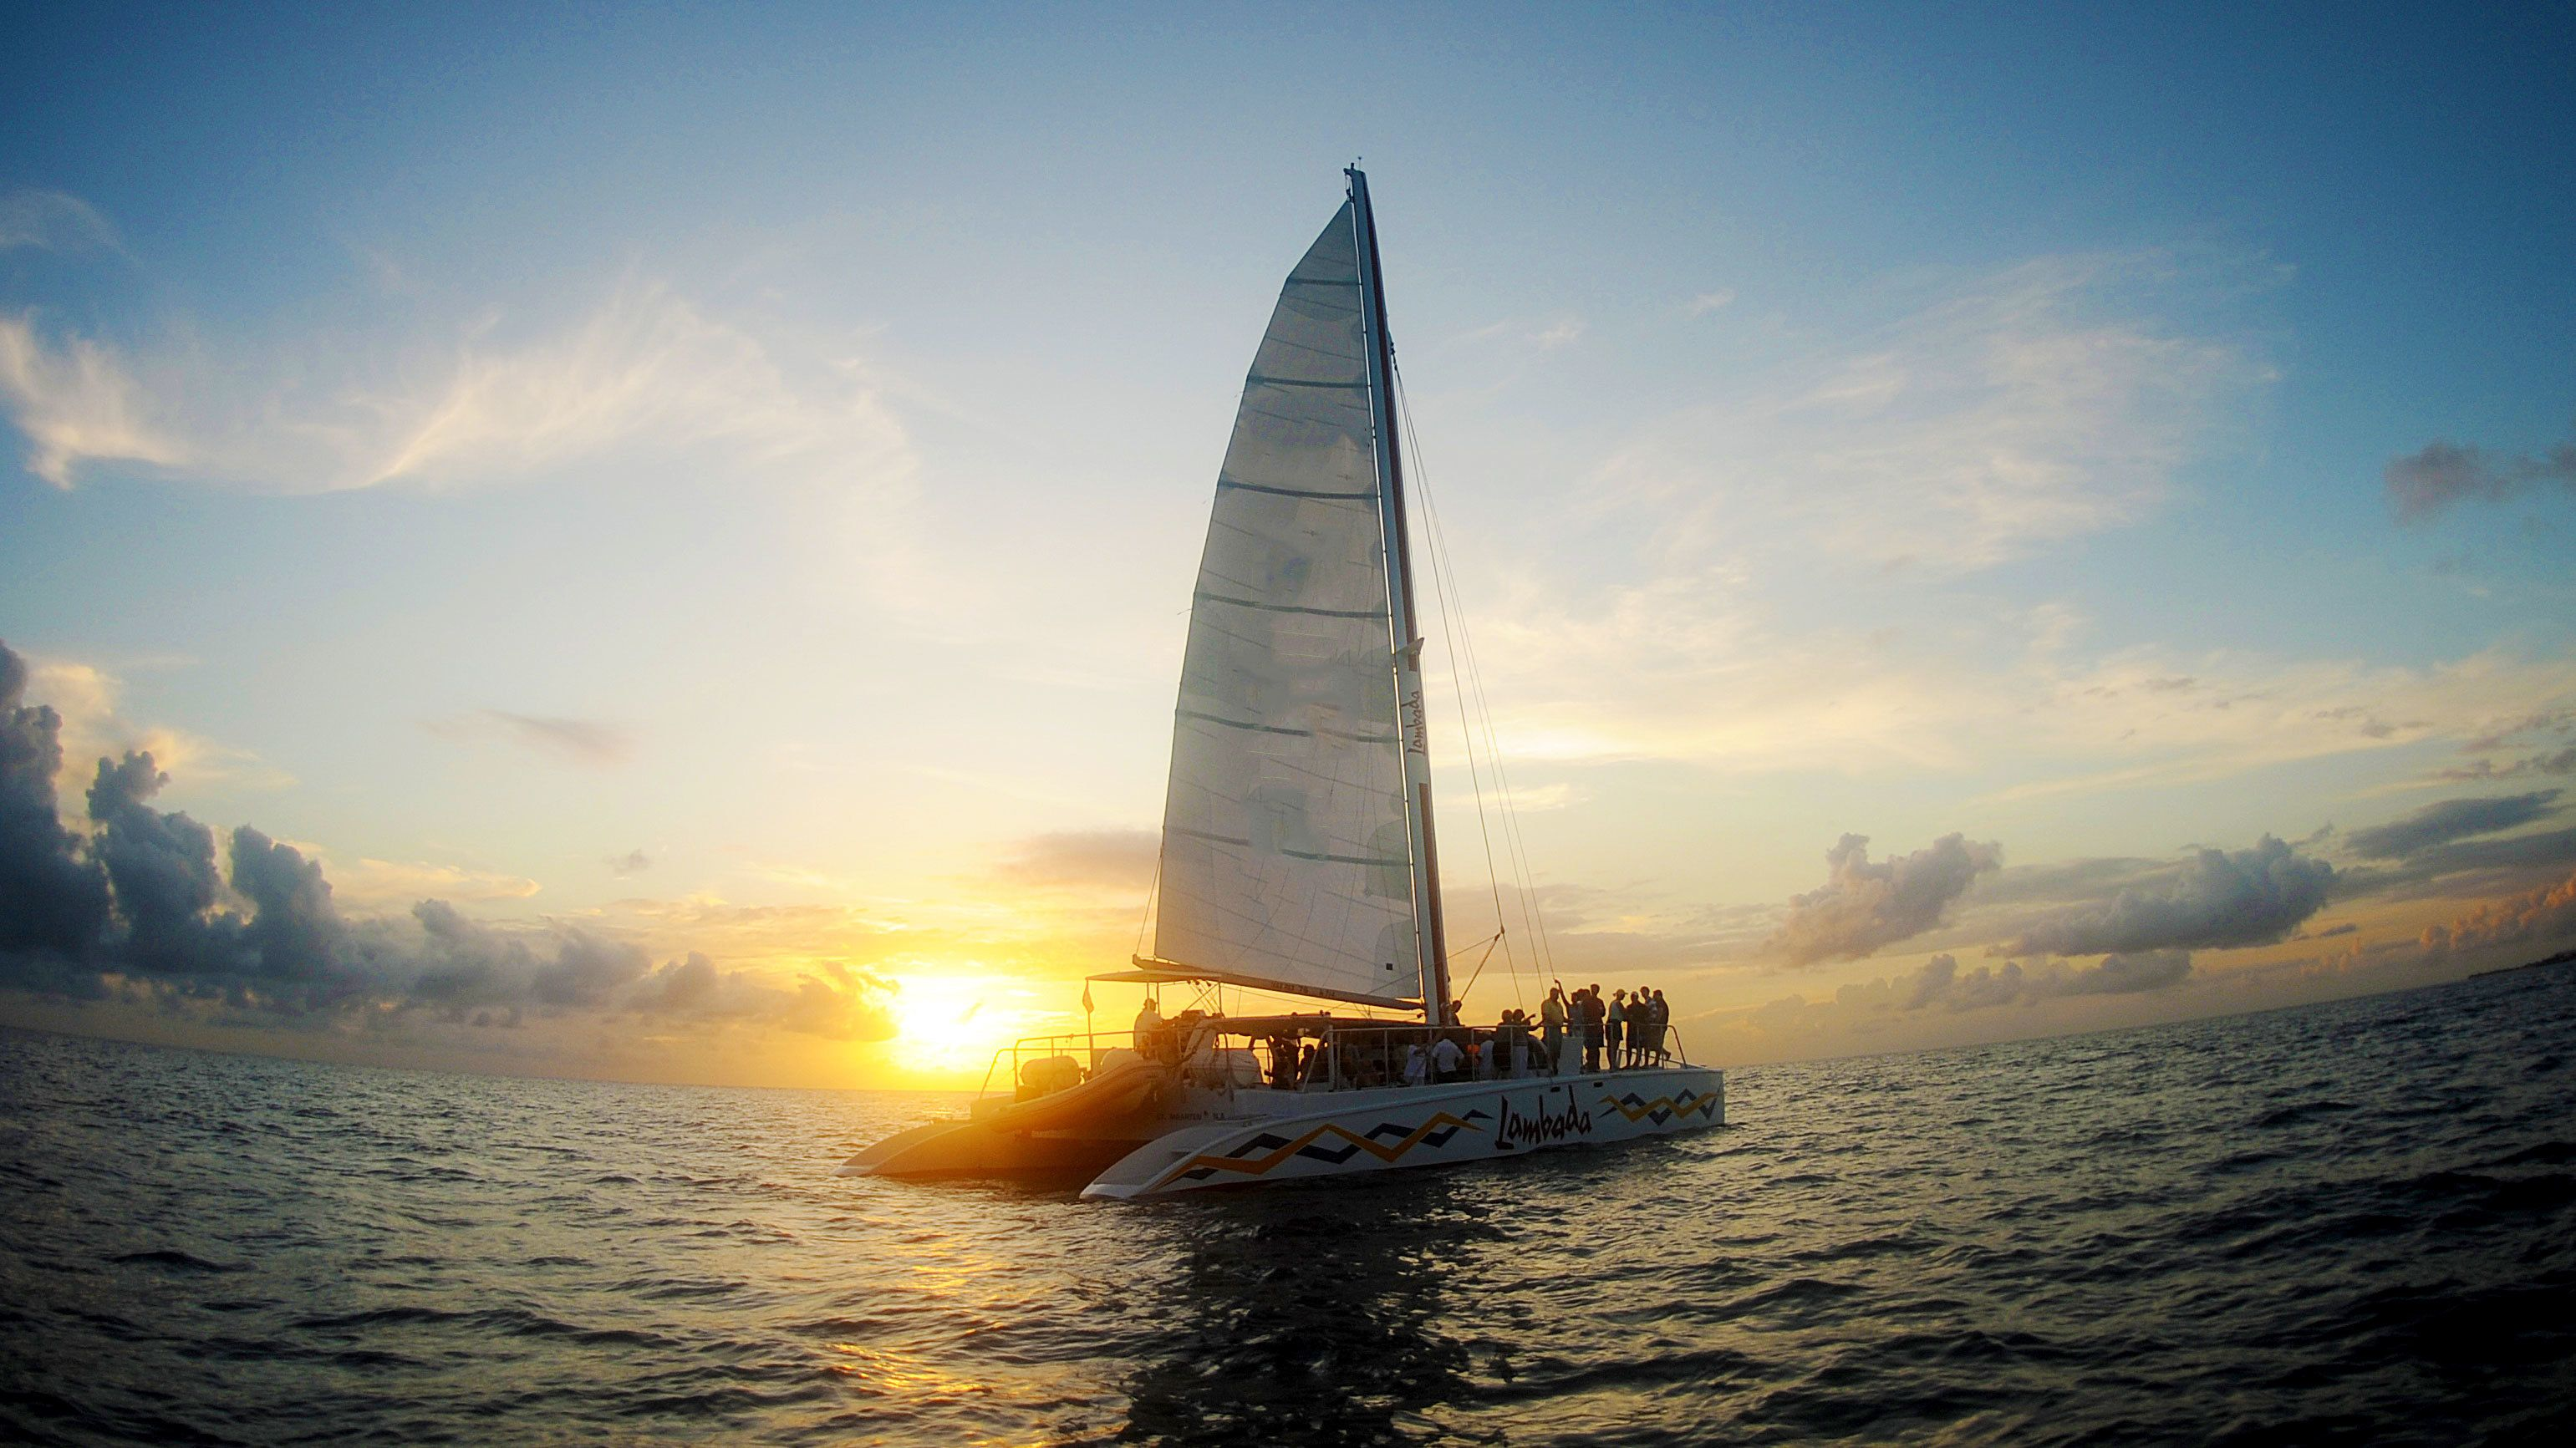 Lambada catamaran sailing off into the sunset